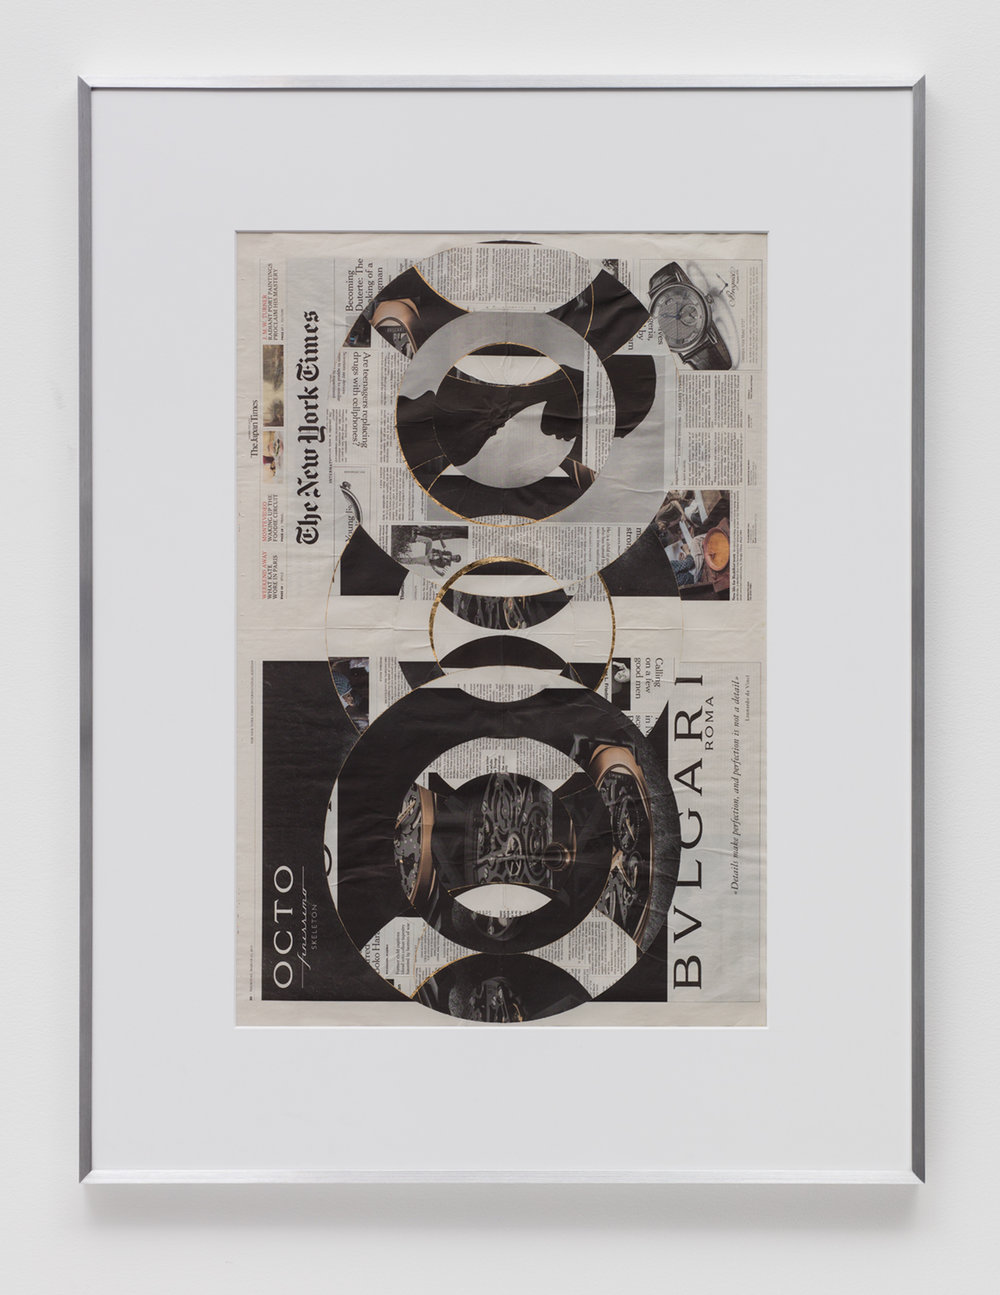 Blind Collage (Three 180º Rotations, The New York Times International Edition Distributed with The Japan Times, Thursday, March 23, 2017)   2017  Newspaper, tape, and 22 karat gold leaf  43 5/8 x 33 1/8 inches   Blind Collages, 2017–    Transparencies, 2017    Equivalents, 2018